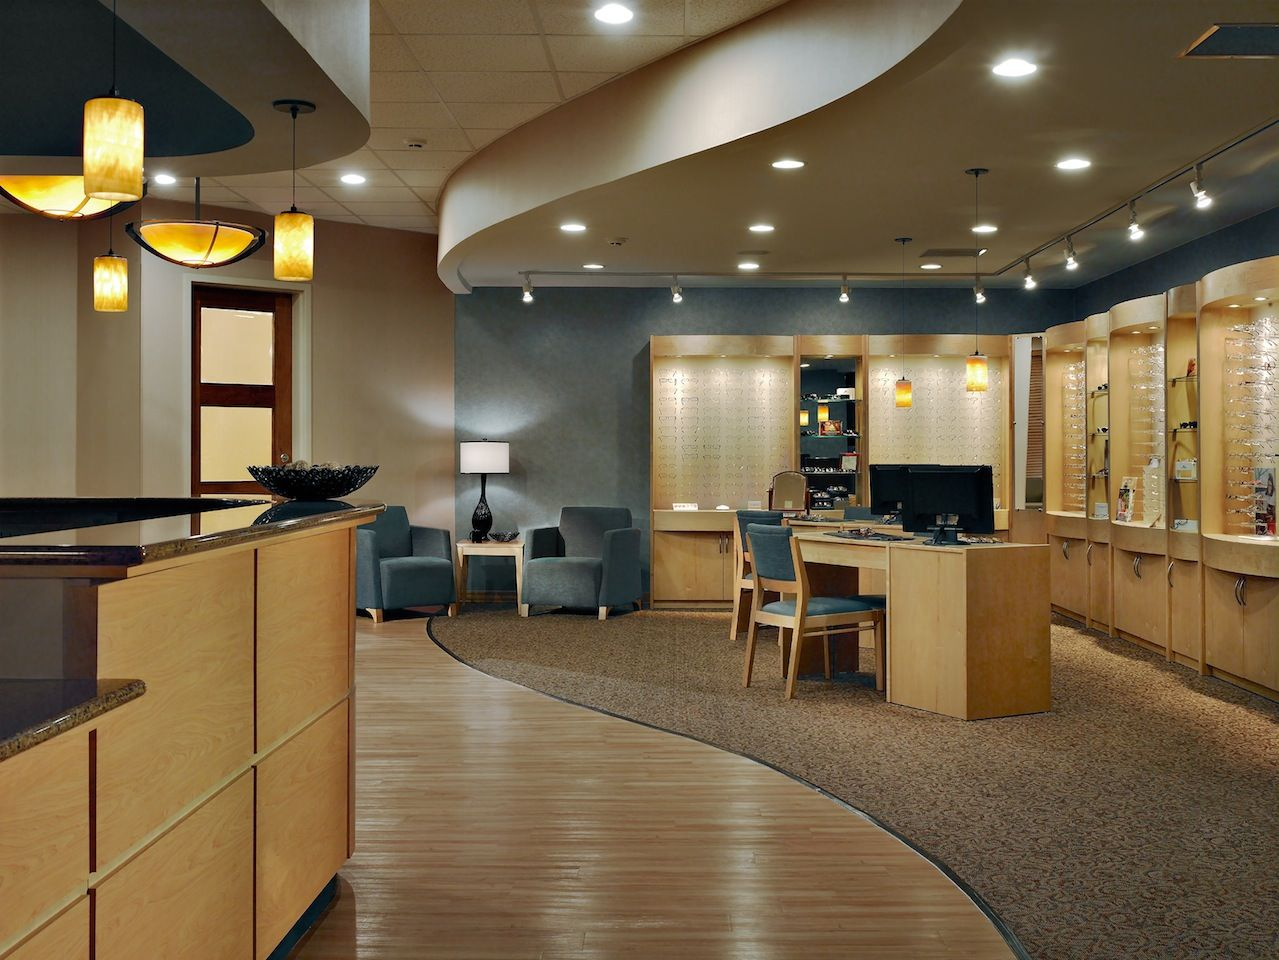 Medical Office Design Ideas medical office design google search Medical Space Design Google Search